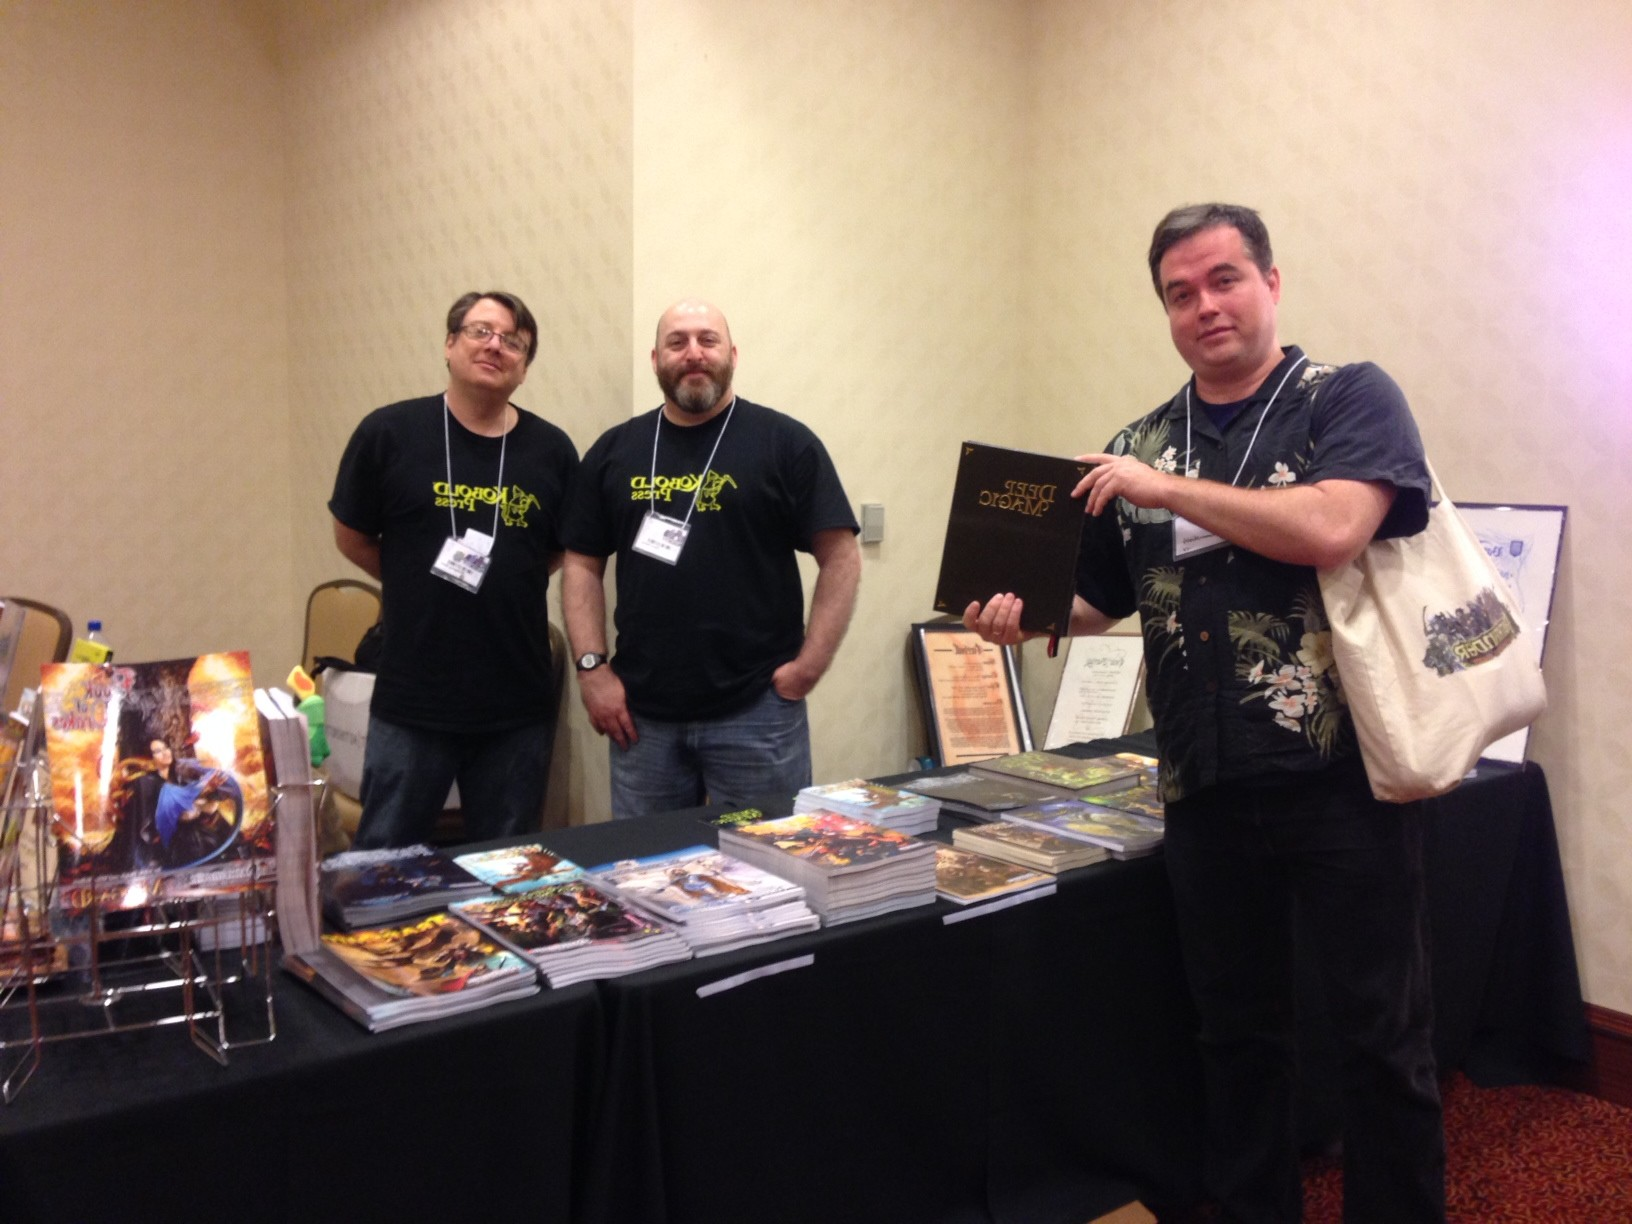 PaizoCon 2014 - Booth